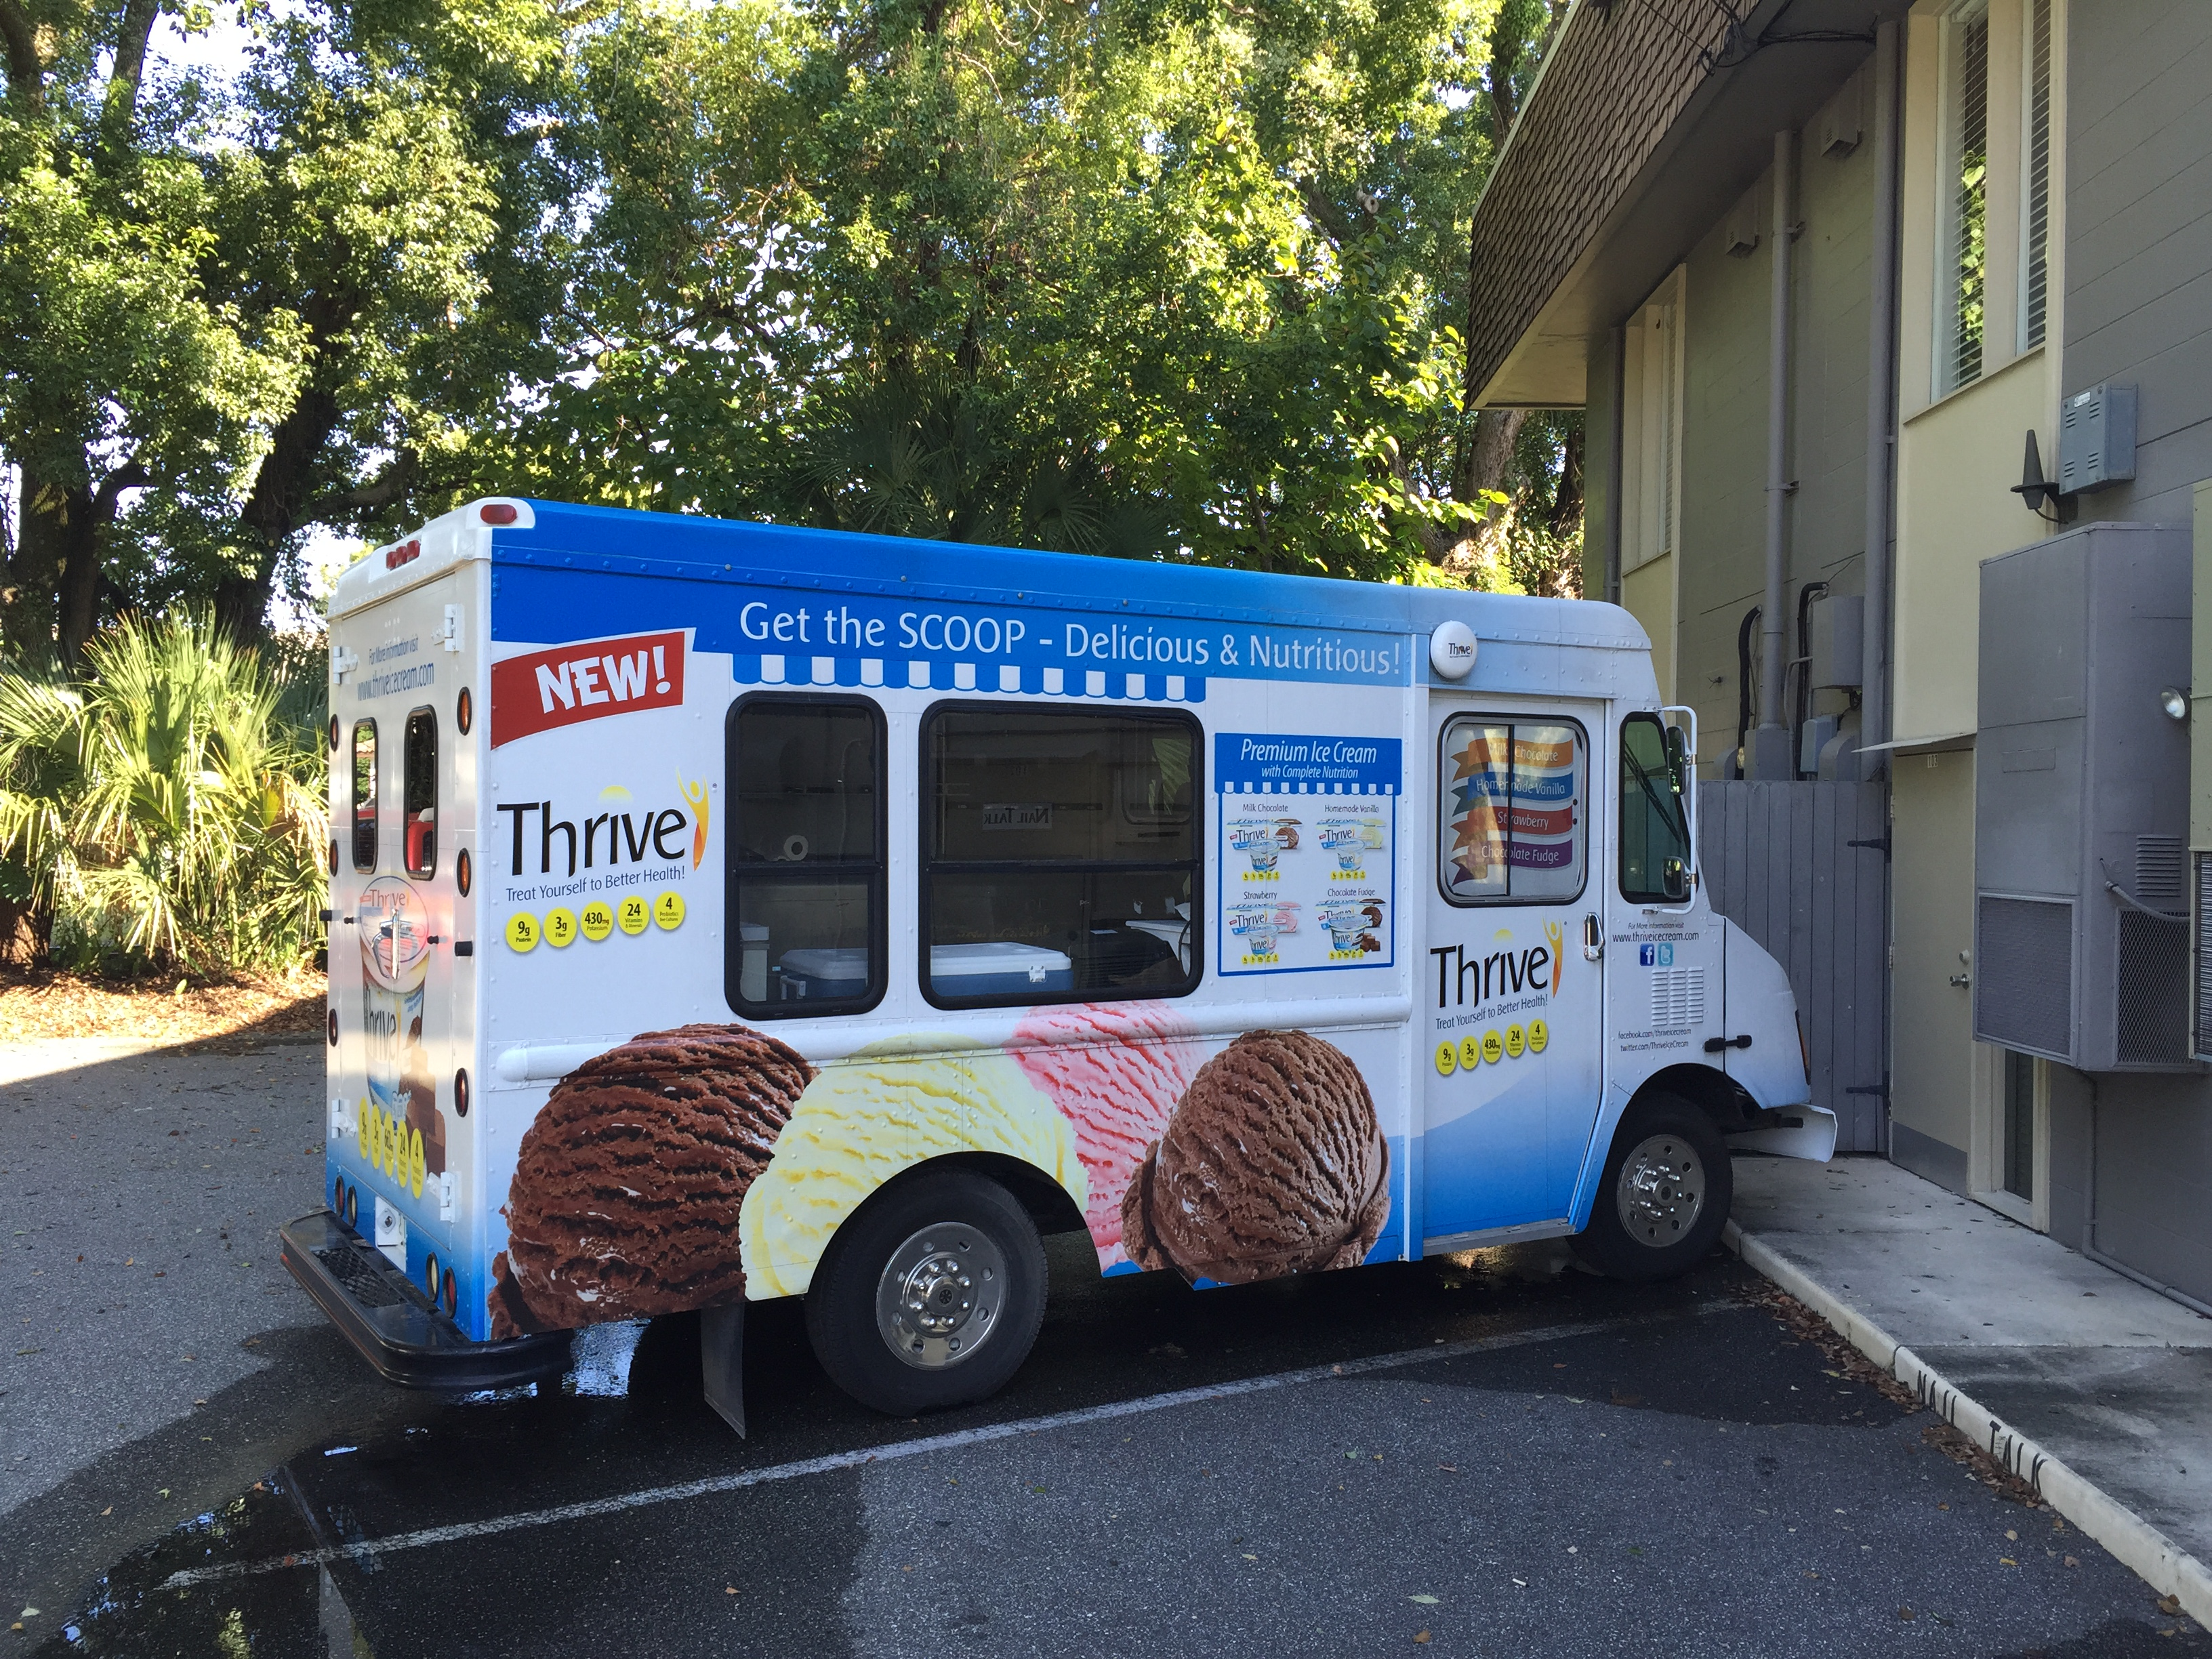 Thrive Ice Cream Truck Vending side